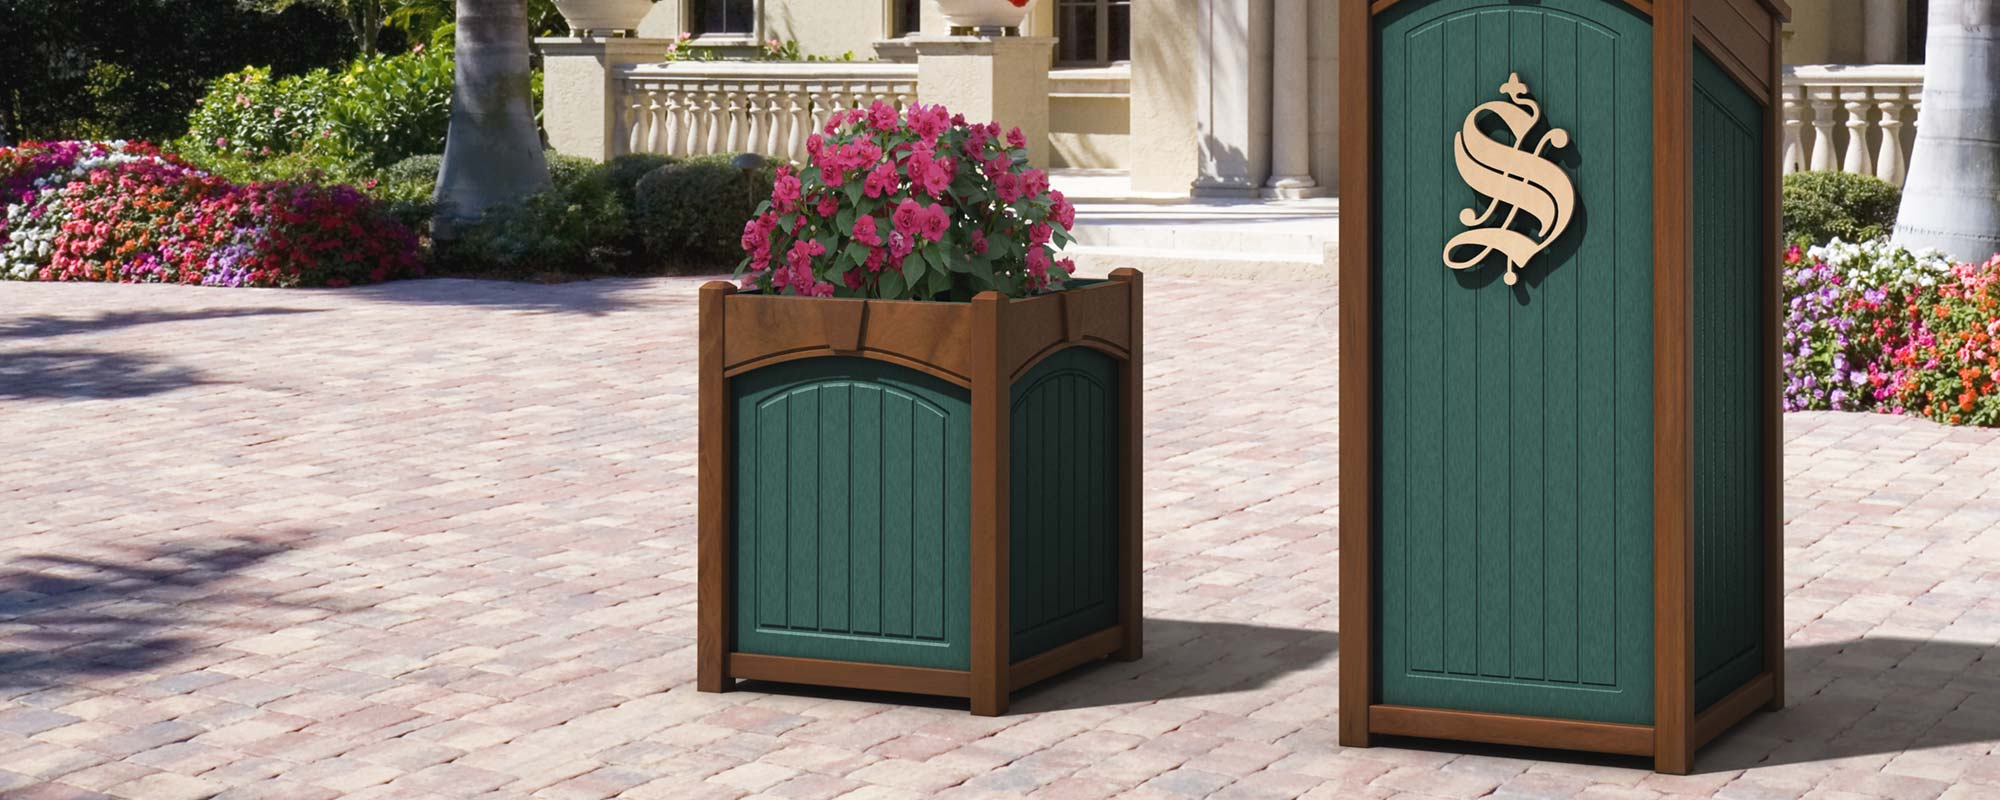 Planter Boxes hero image